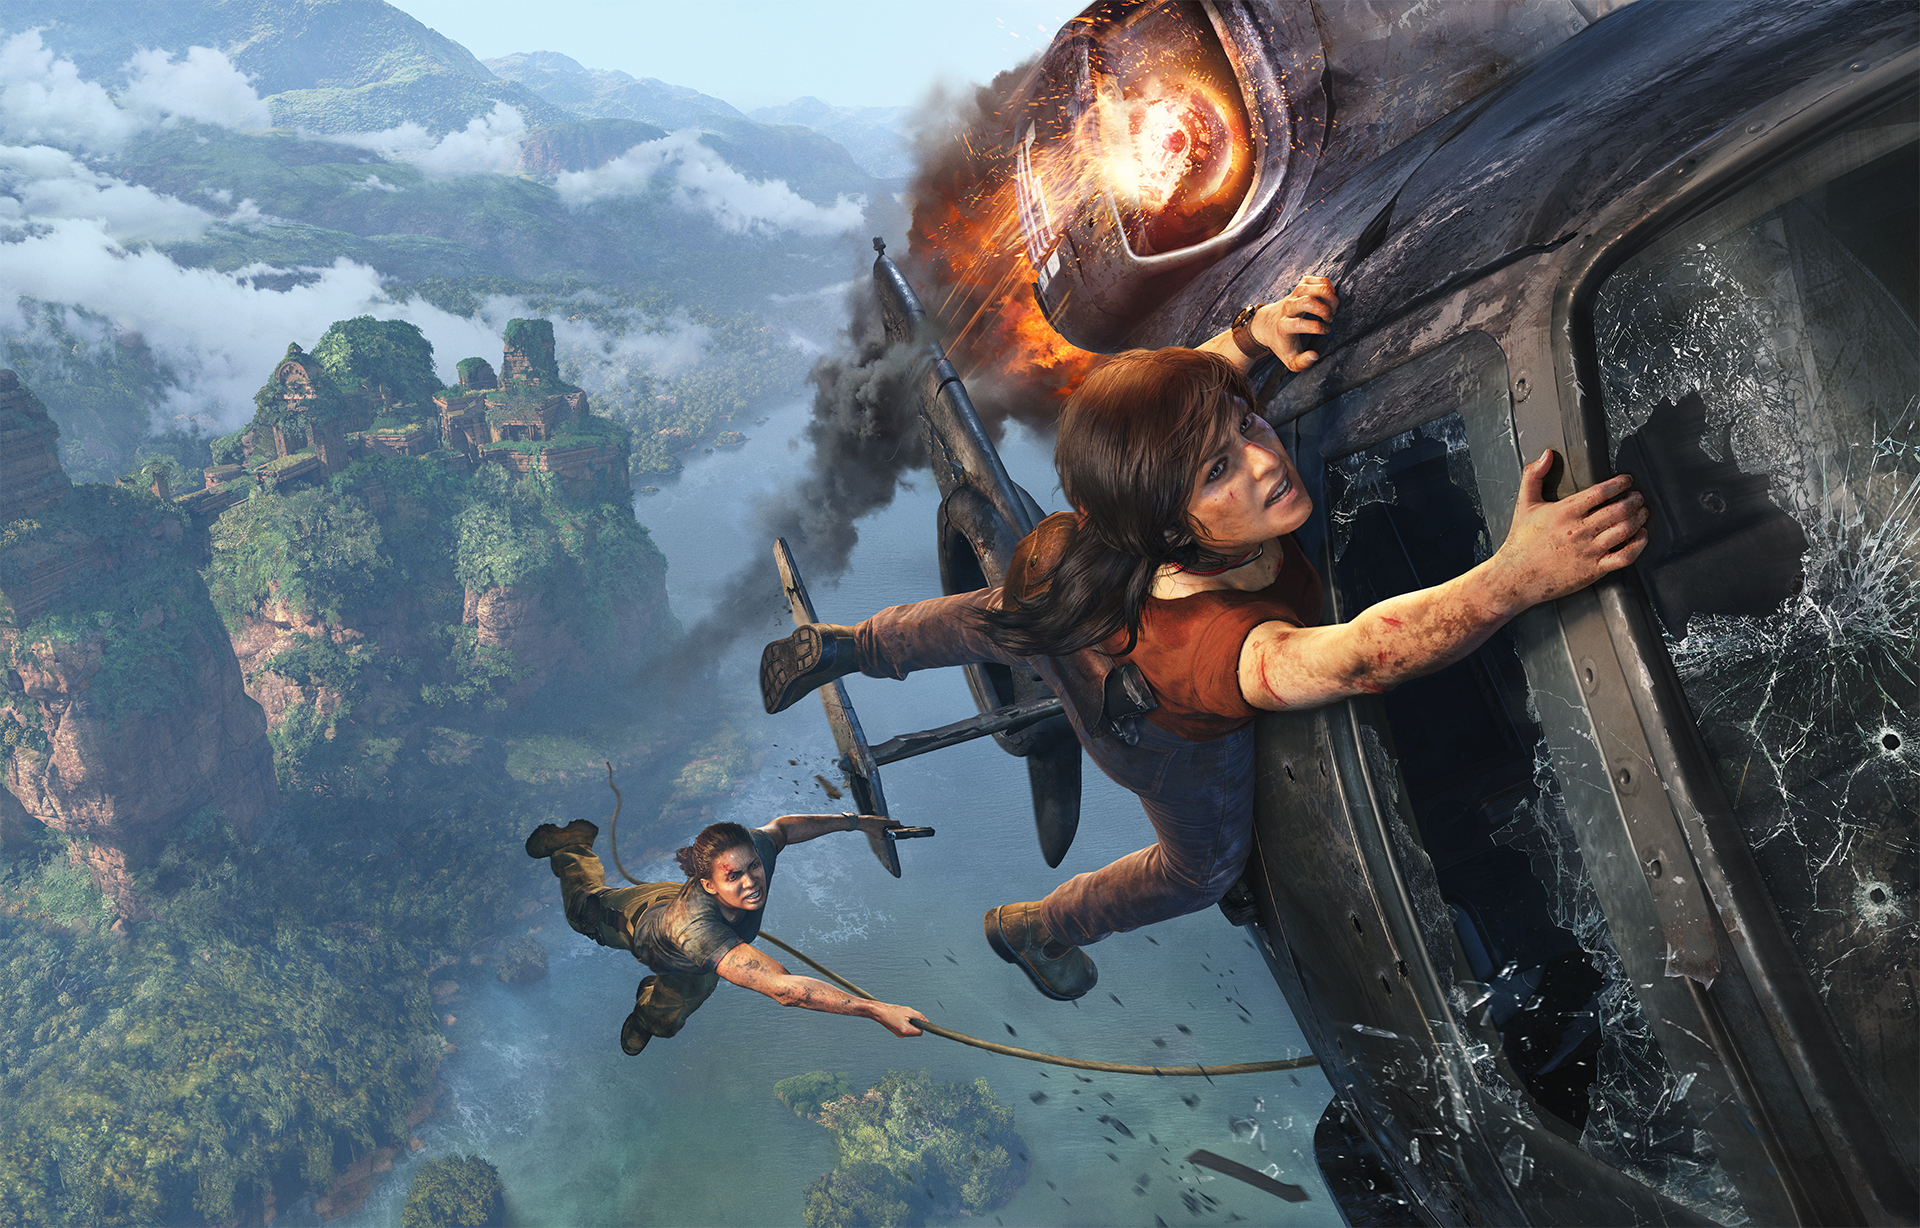 Uncharted: The Lost Legacy is Out Now on PS4